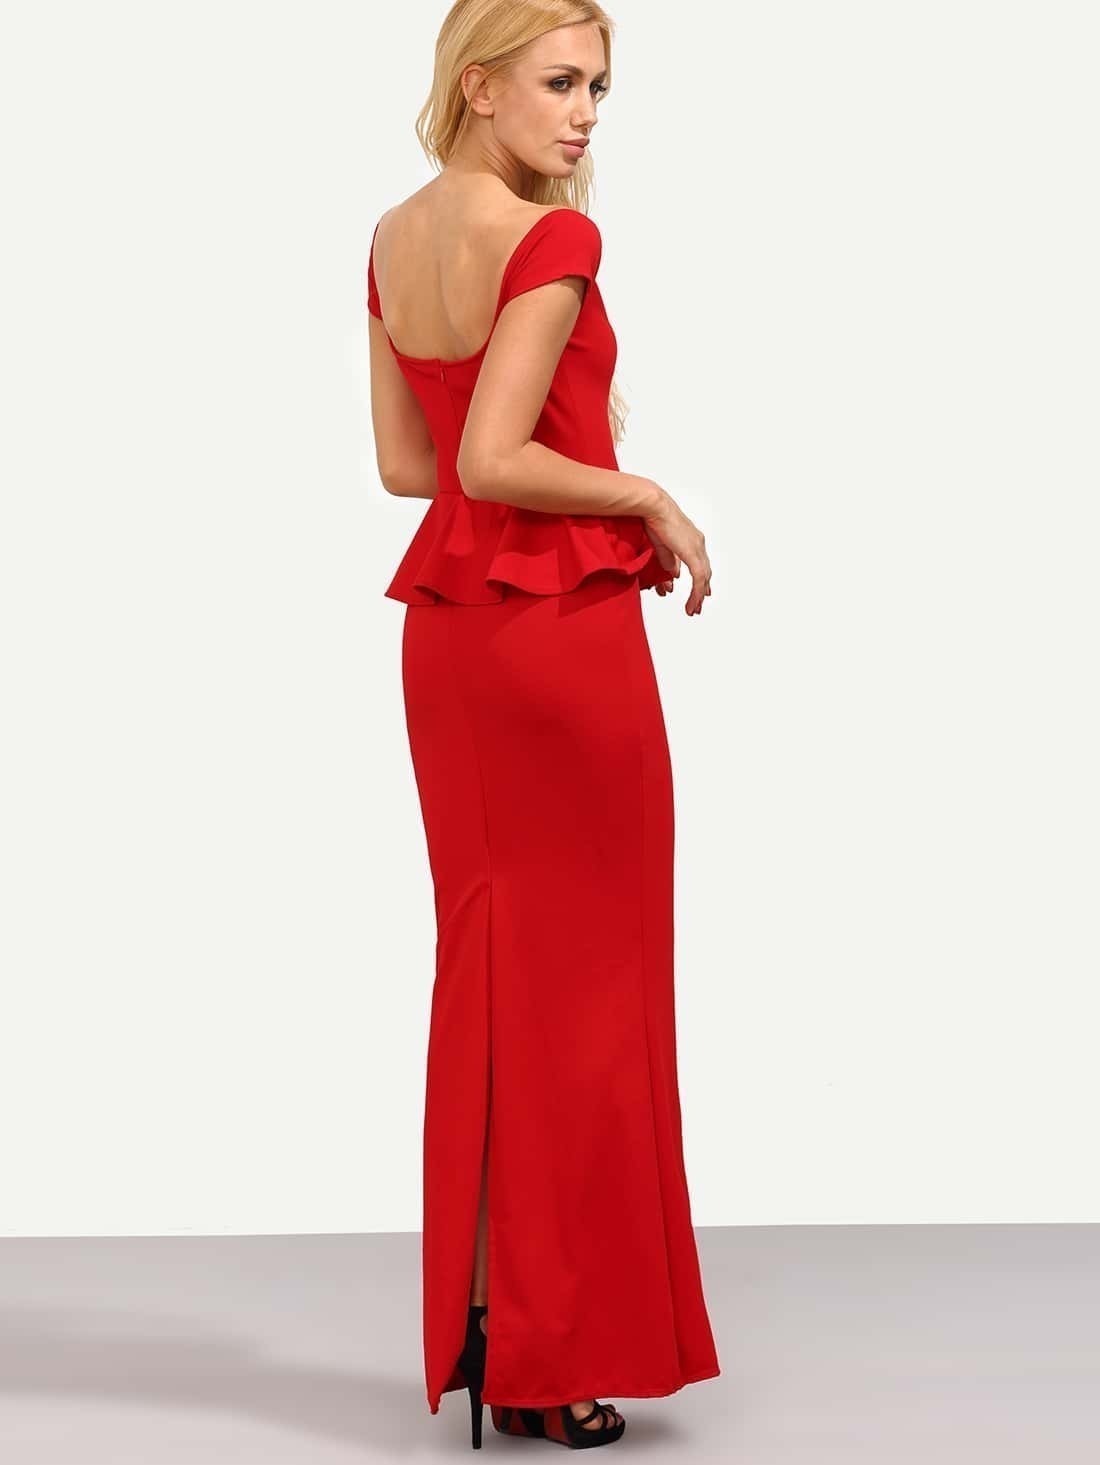 Robe fendue paule d nud e rouge french romwe for Interieur paupiere inferieure rouge